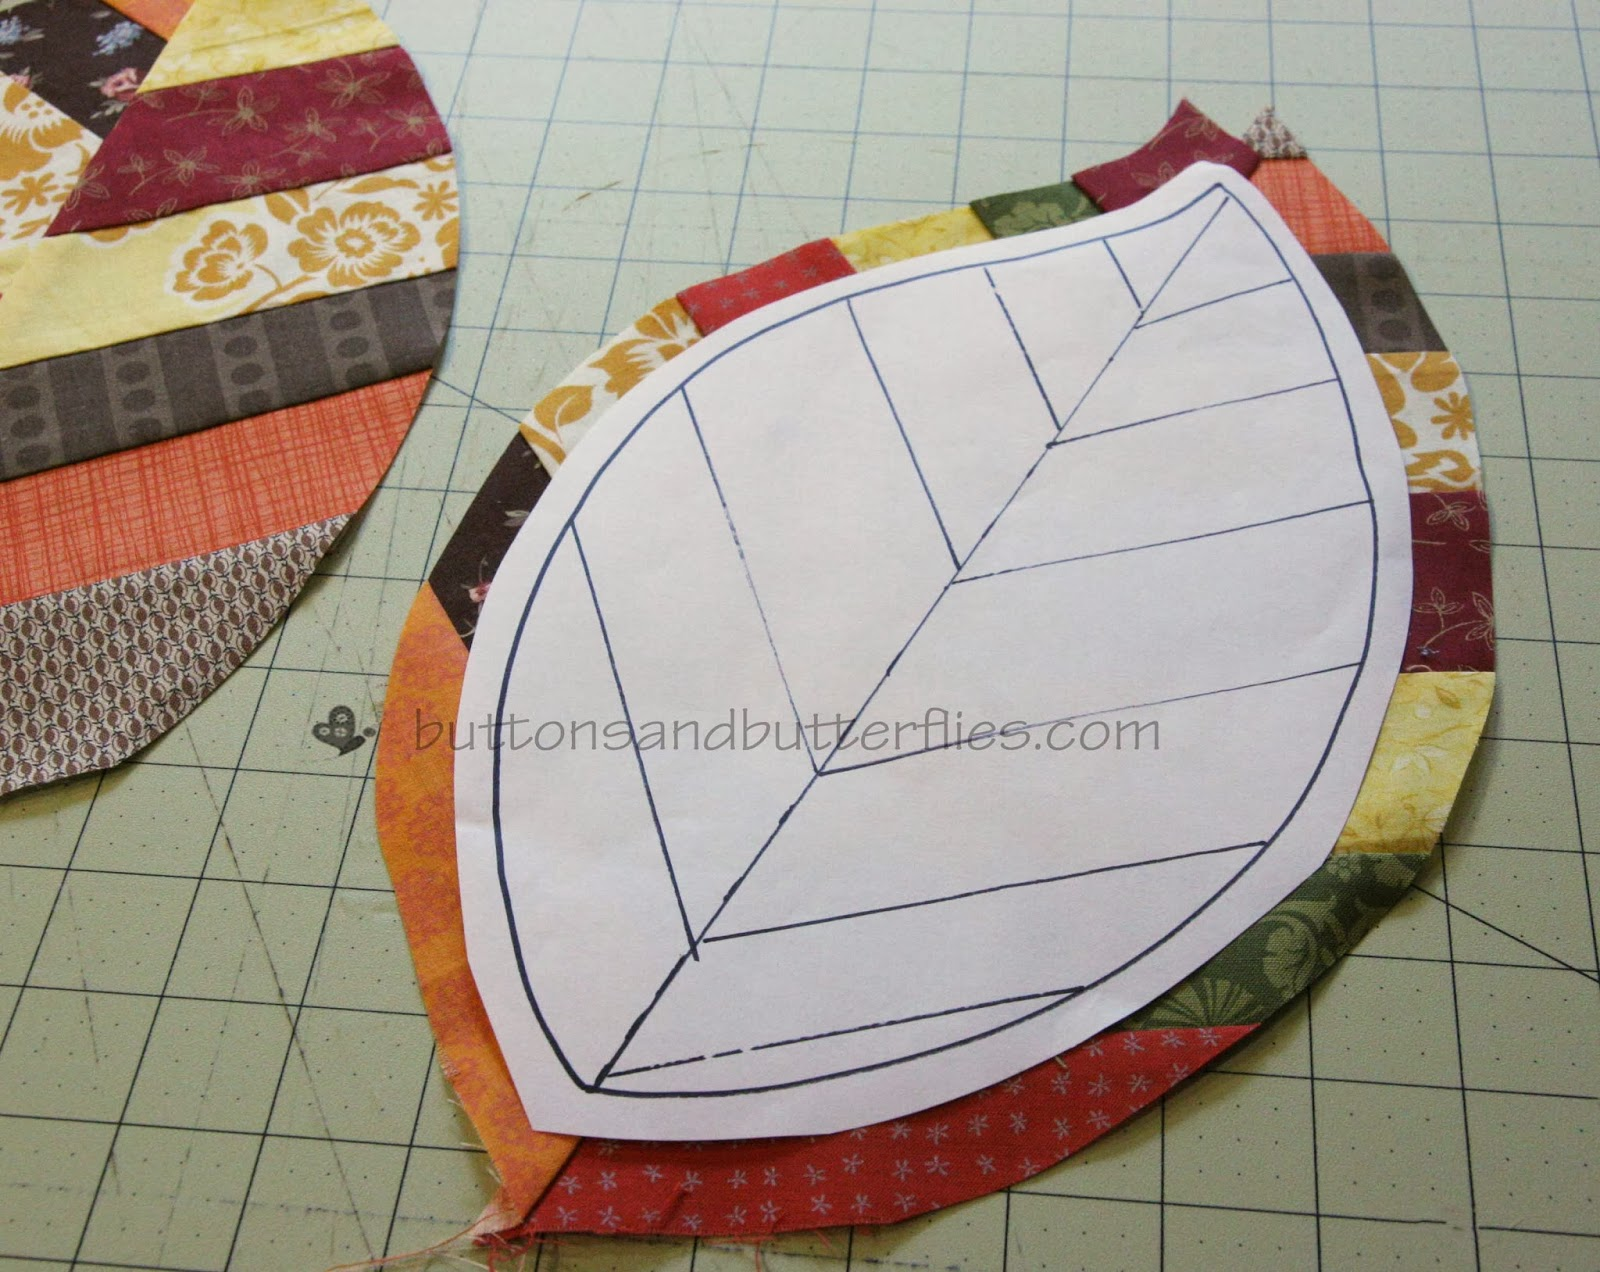 buttons and butterflies quilted leaf potholders tutorial